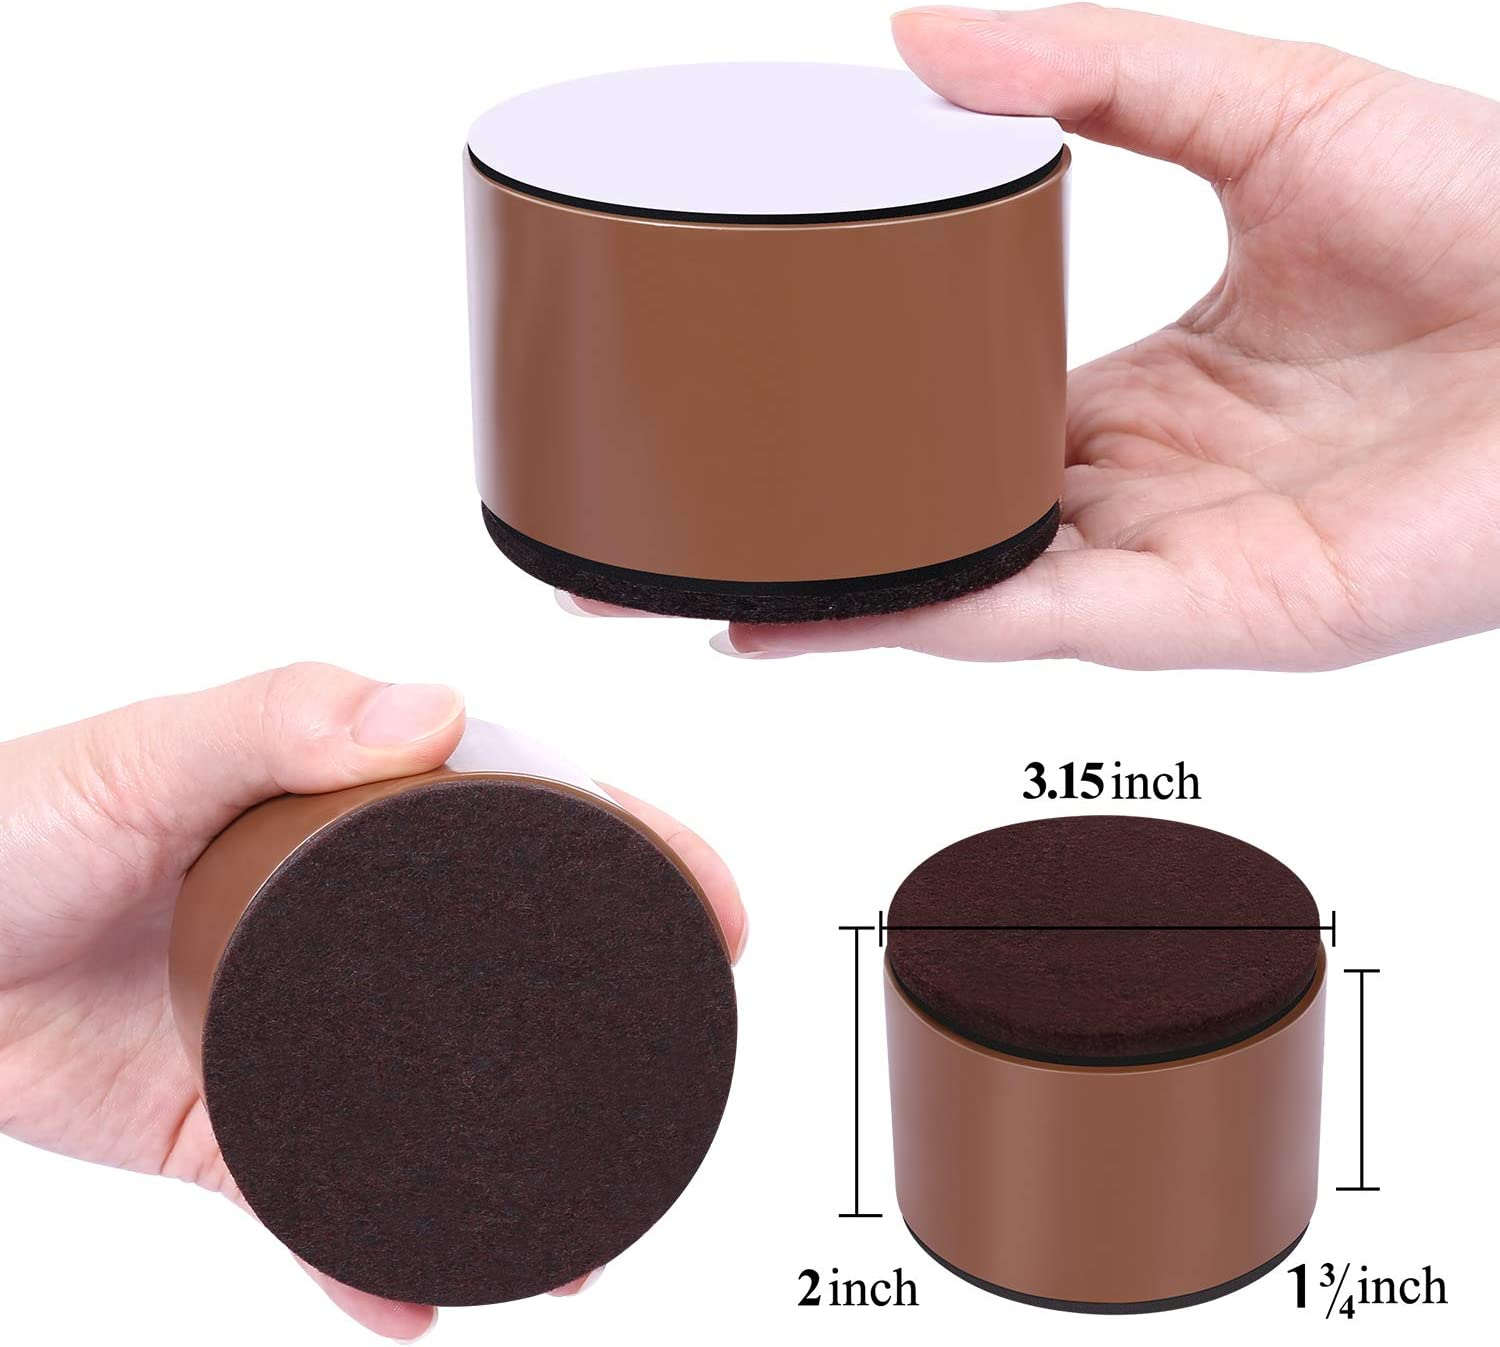 AIRUJIA 5cm Lift Furniture Risers Carbon Steel Bed Risers Diameter 8cm Self-Adhesive Heavy Duty Furniture Raisers Adds 5cm Height to Beds Sofas Cabinets Supports 20,000 lbs,Round Black